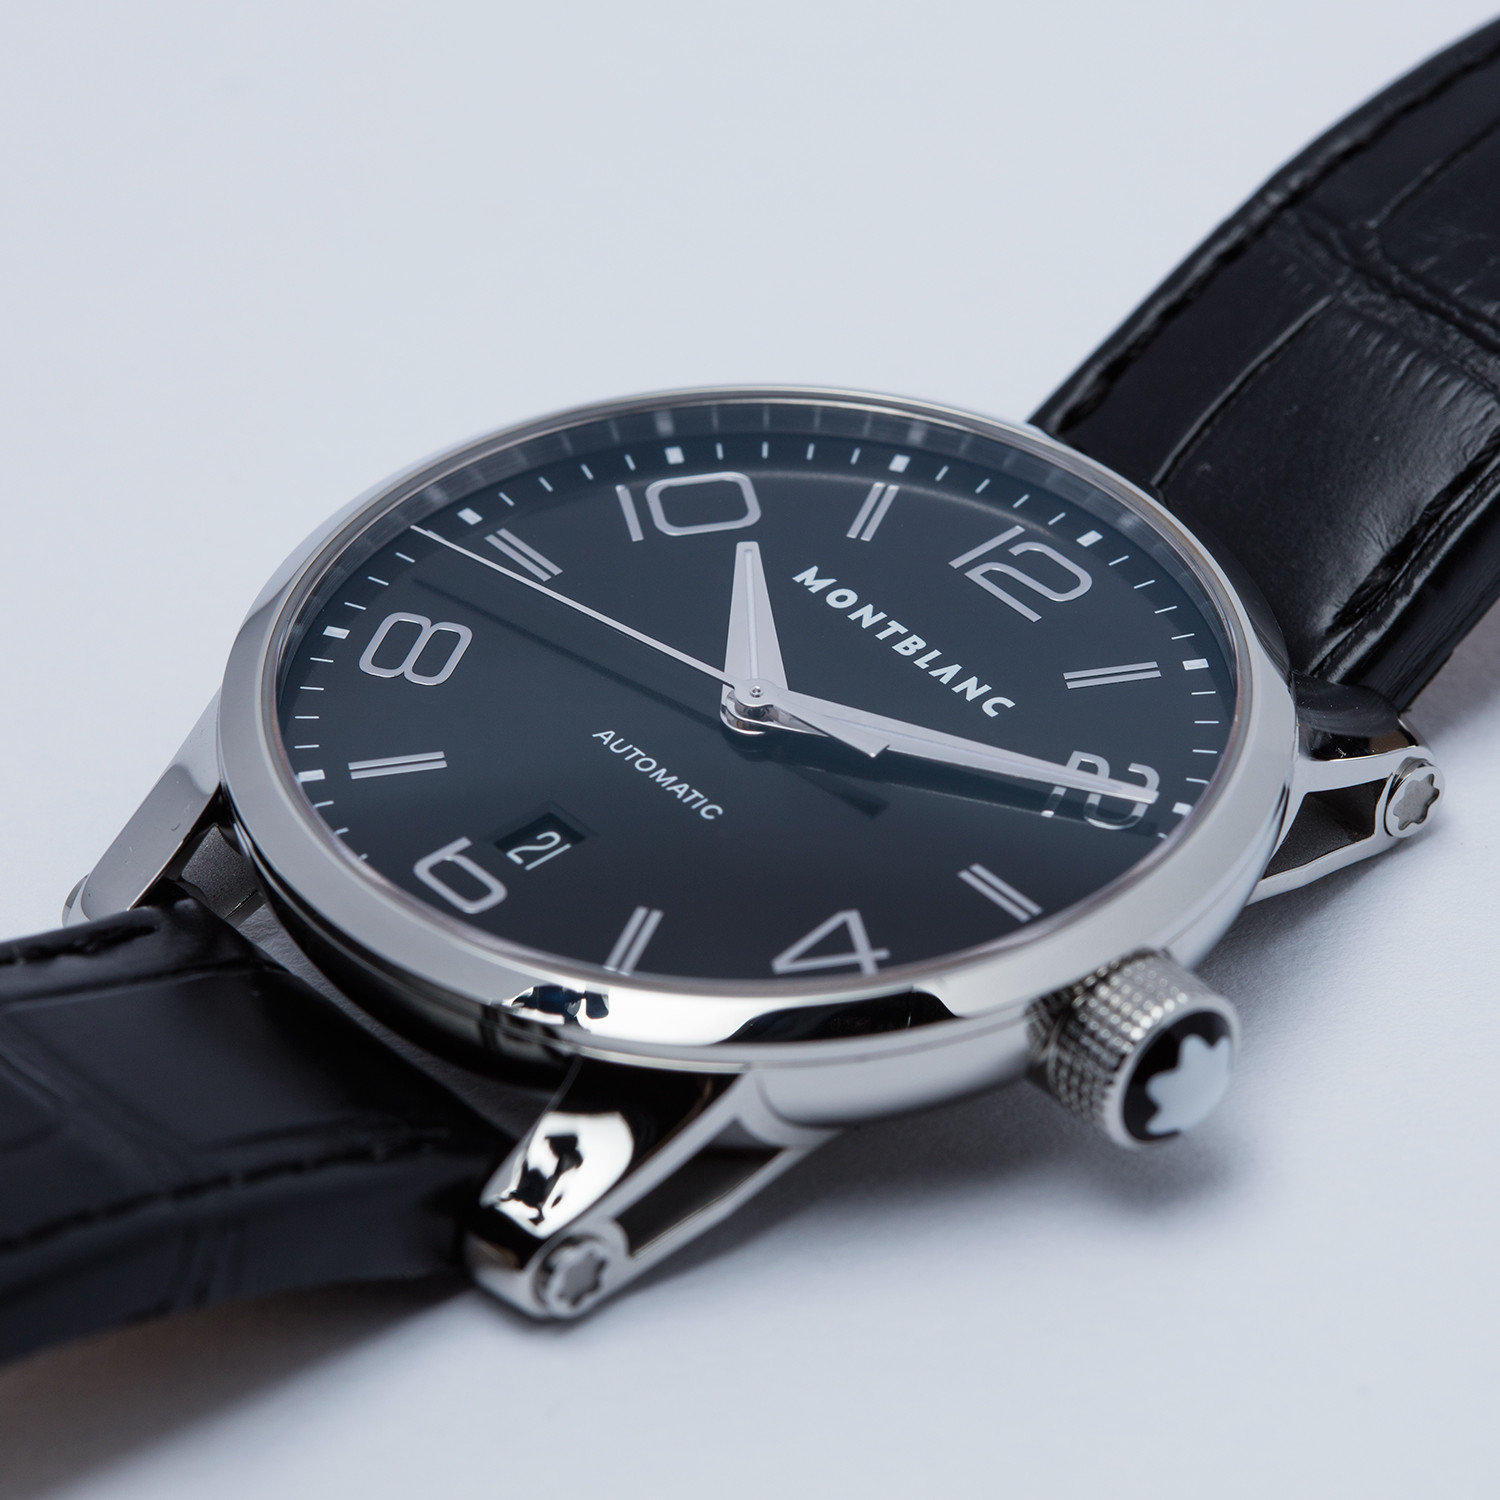 622bf4ee1a4 Montblanc Timewalker Automatic    105812    Store Display - The ...